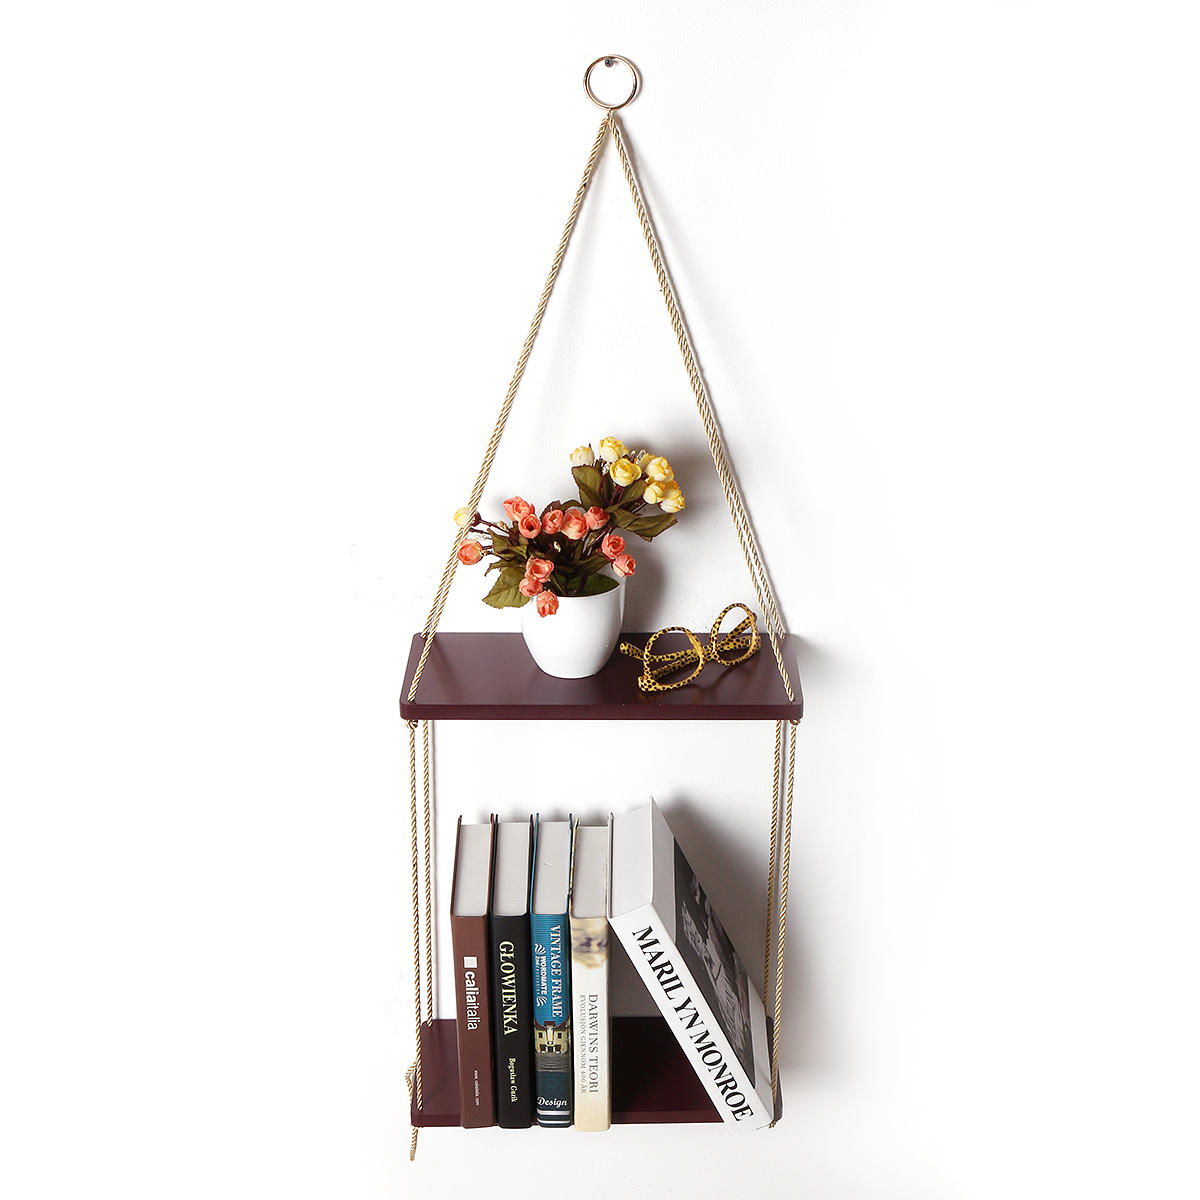 35cm 45cm 2 Layers Solid Wood Rope Hanging Wall Shelf Vintage Floating Storage Rack Wall Mount Bookshelf Home Decorations